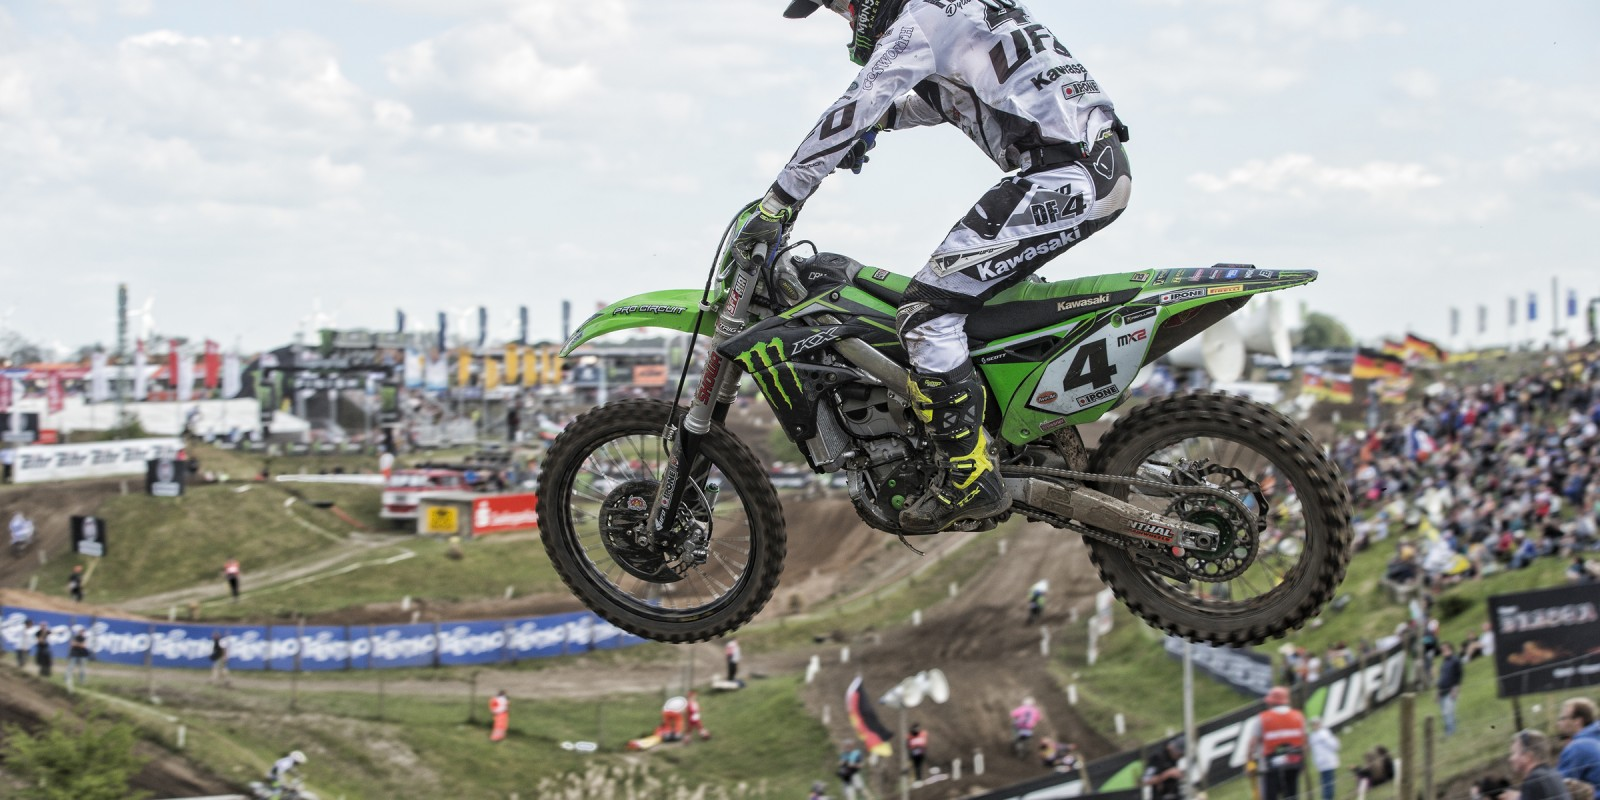 Dylan Ferrandis at the 2016 MXGP of Germany